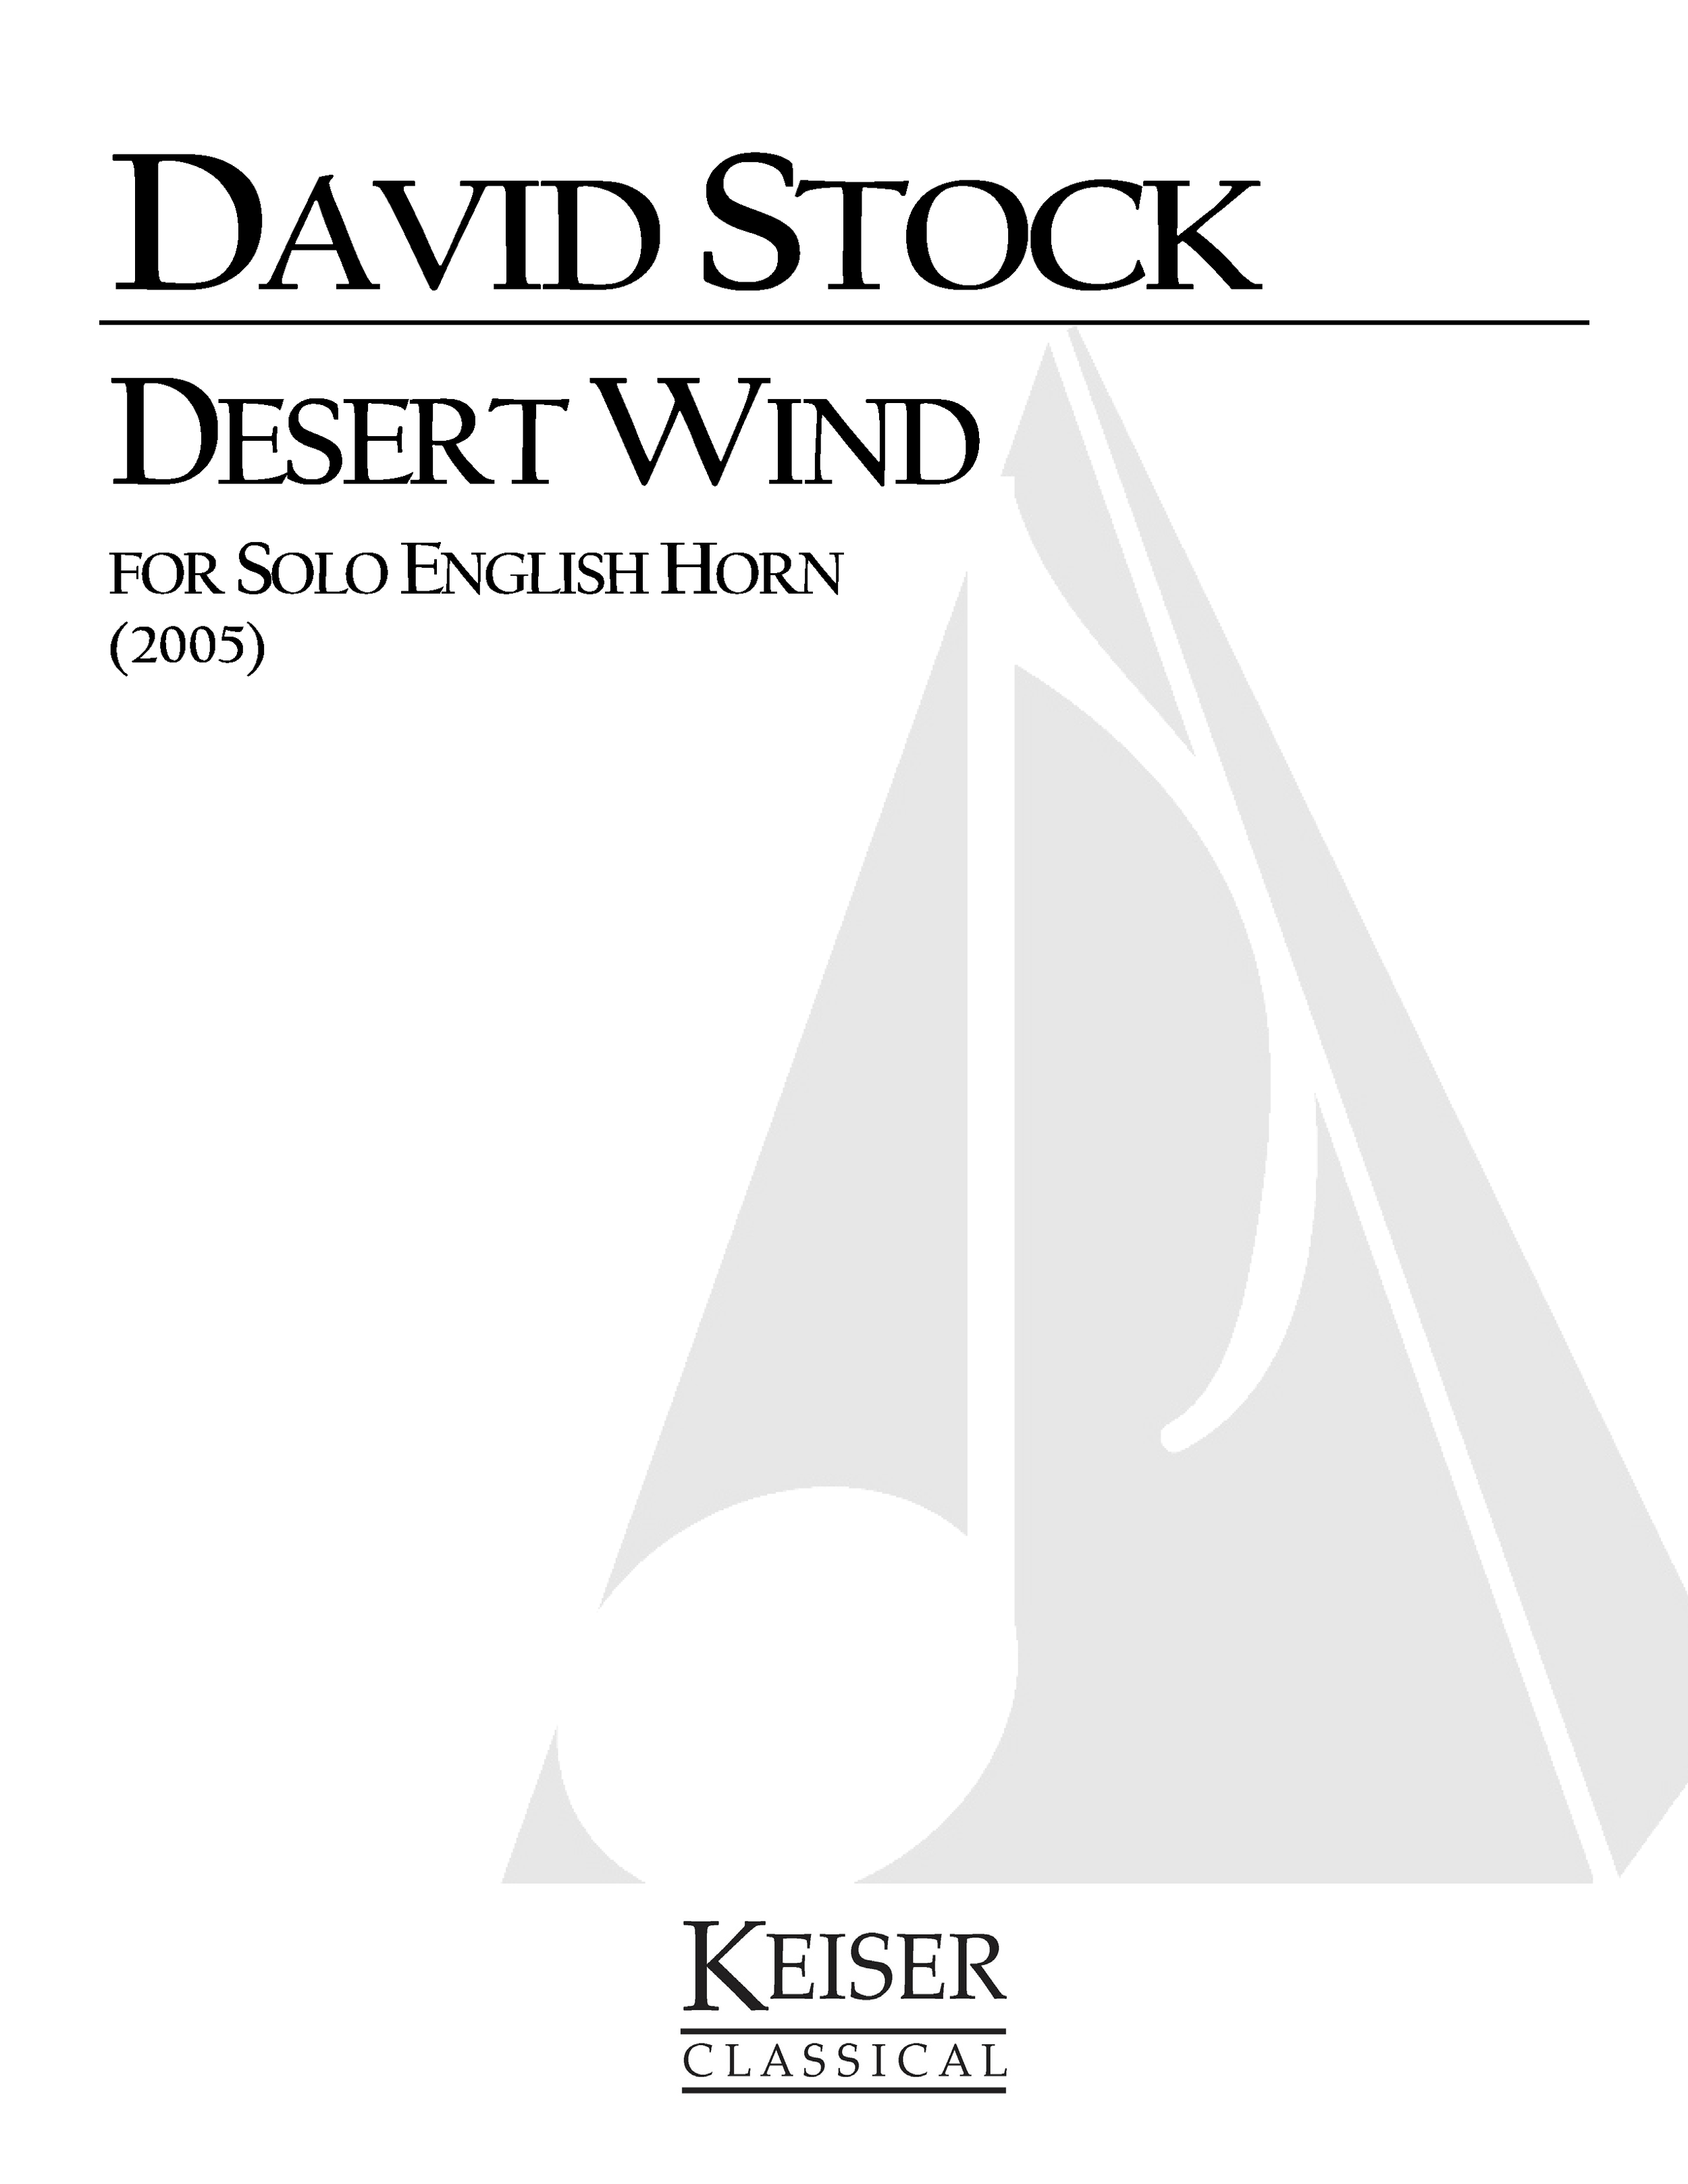 Desert Wind (2005) - English Horn soloRent/Buy: Keiser Music